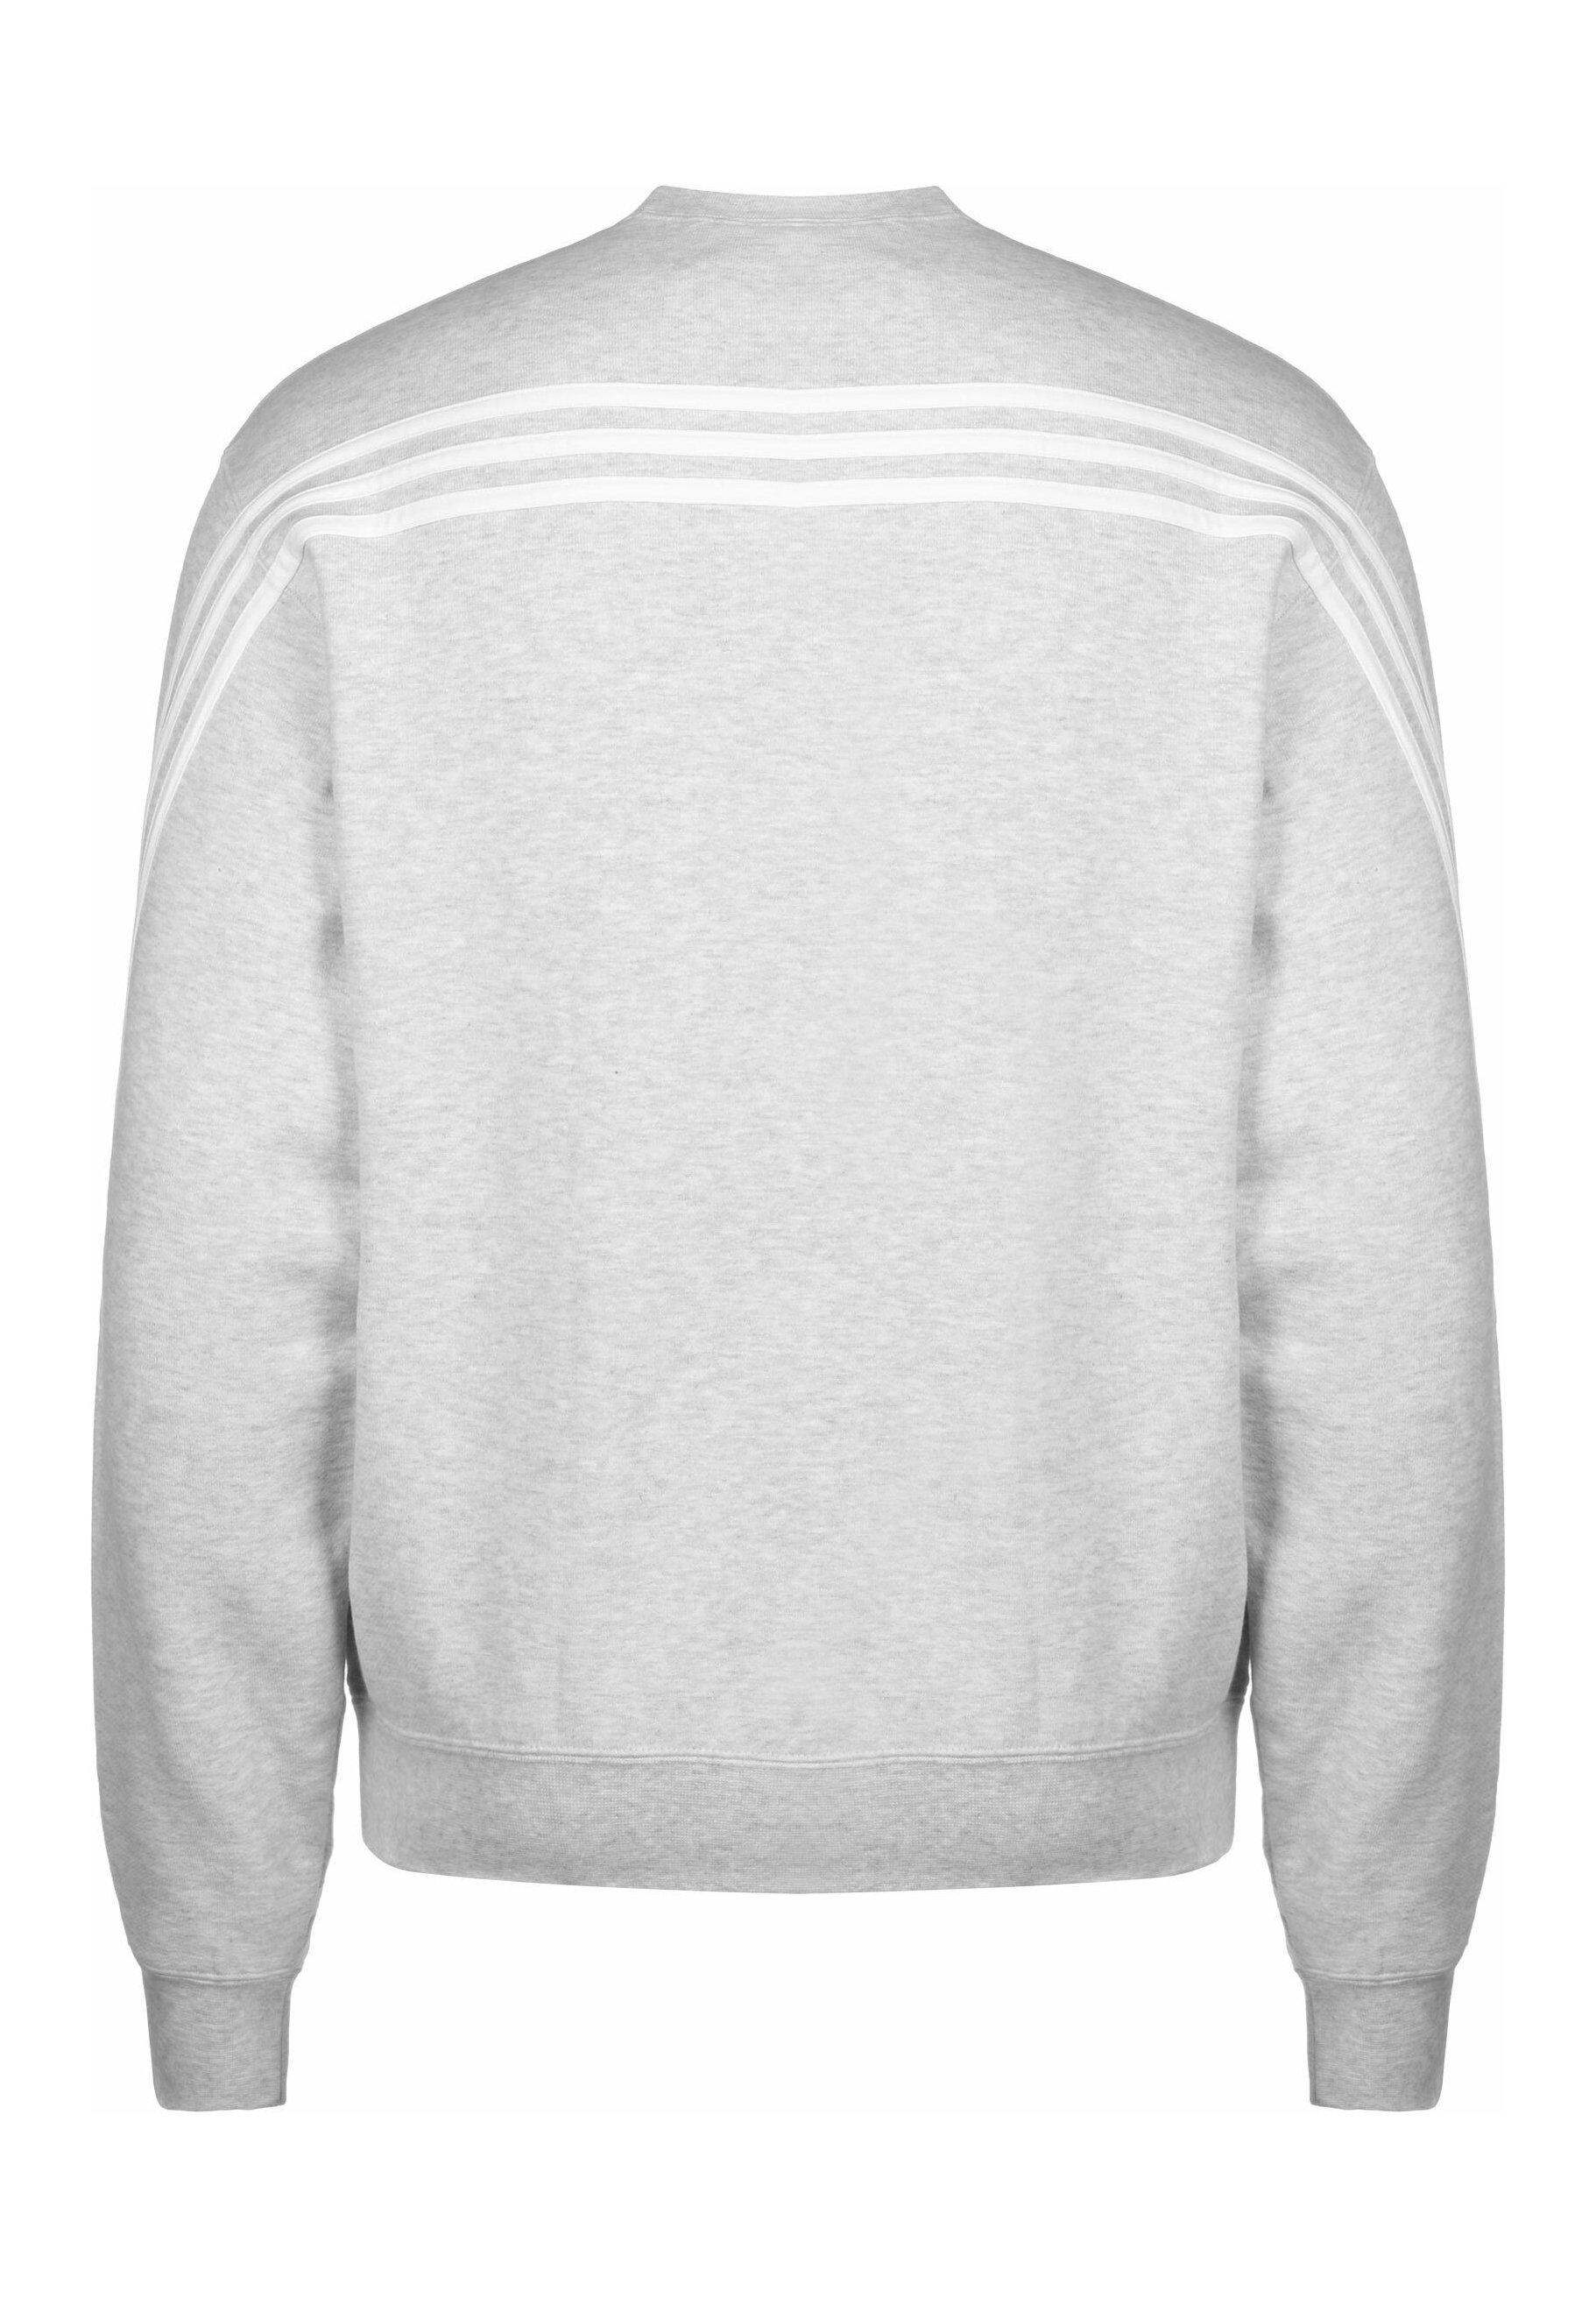 Adidas Originals Sport Collection Long Sleeve Pullover - Sweatshirt Grey/white